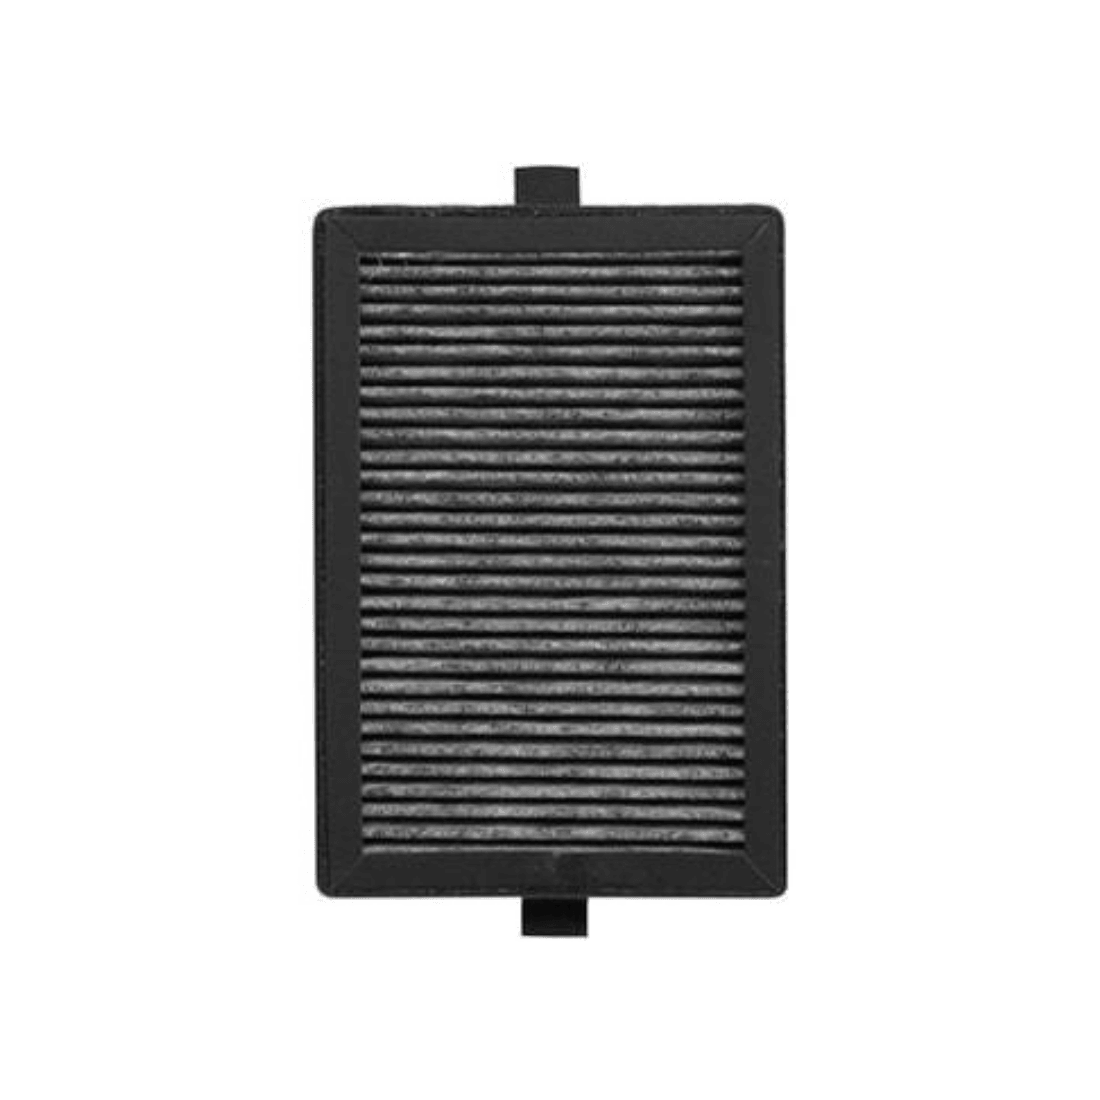 HEPA Pure Filter for Motofresh Elite Car Air Purifier